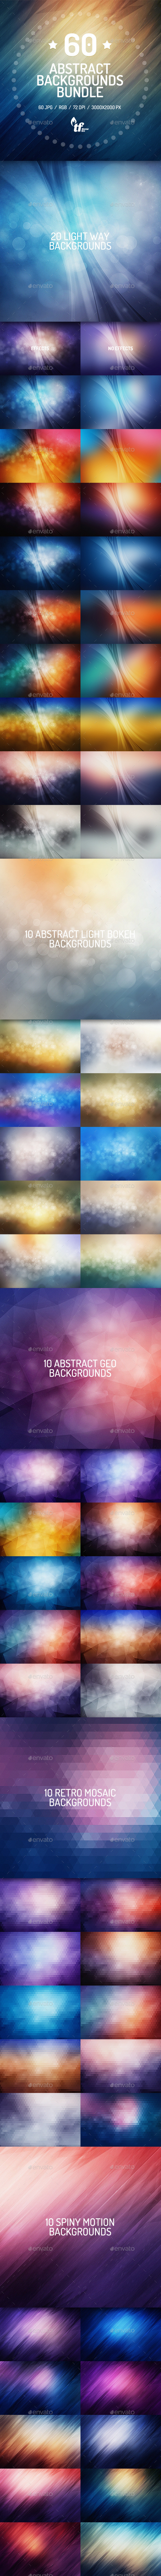 GraphicRiver 60 Abstract Backgrounds Bundle 8817733